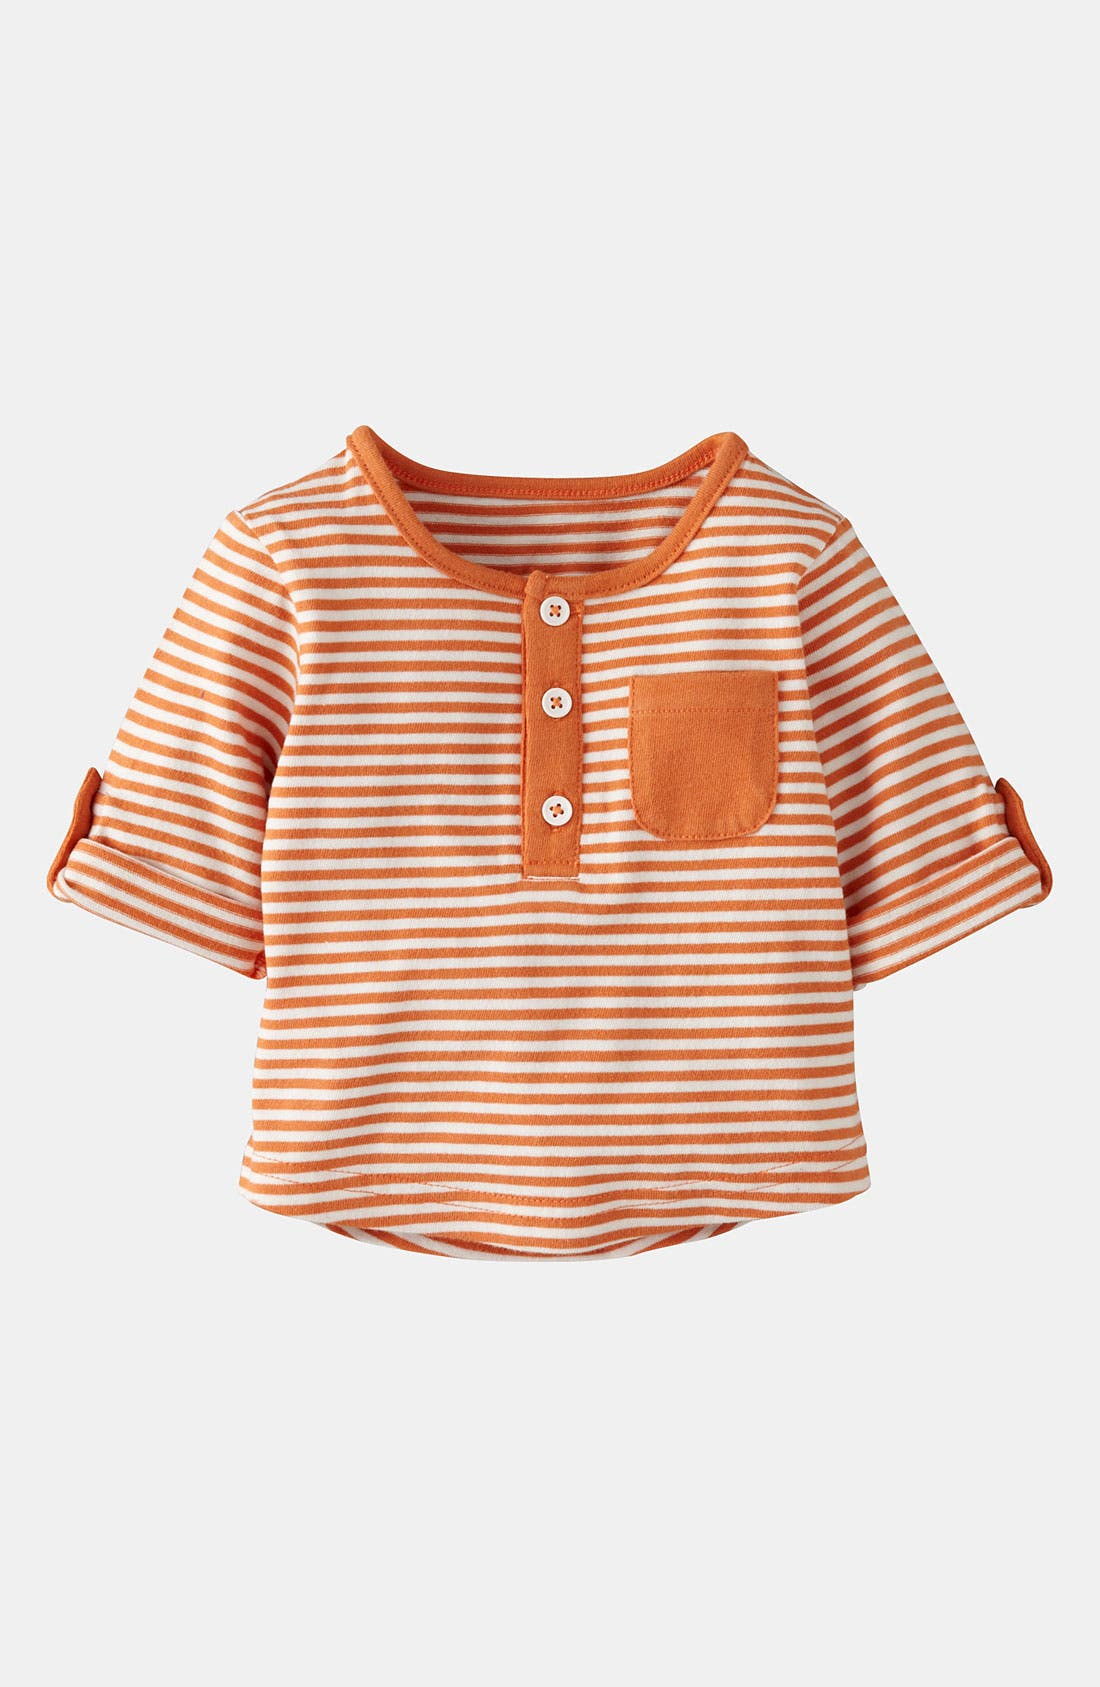 Alternate Image 1 Selected - Mini Boden Henley Shirt (Baby)